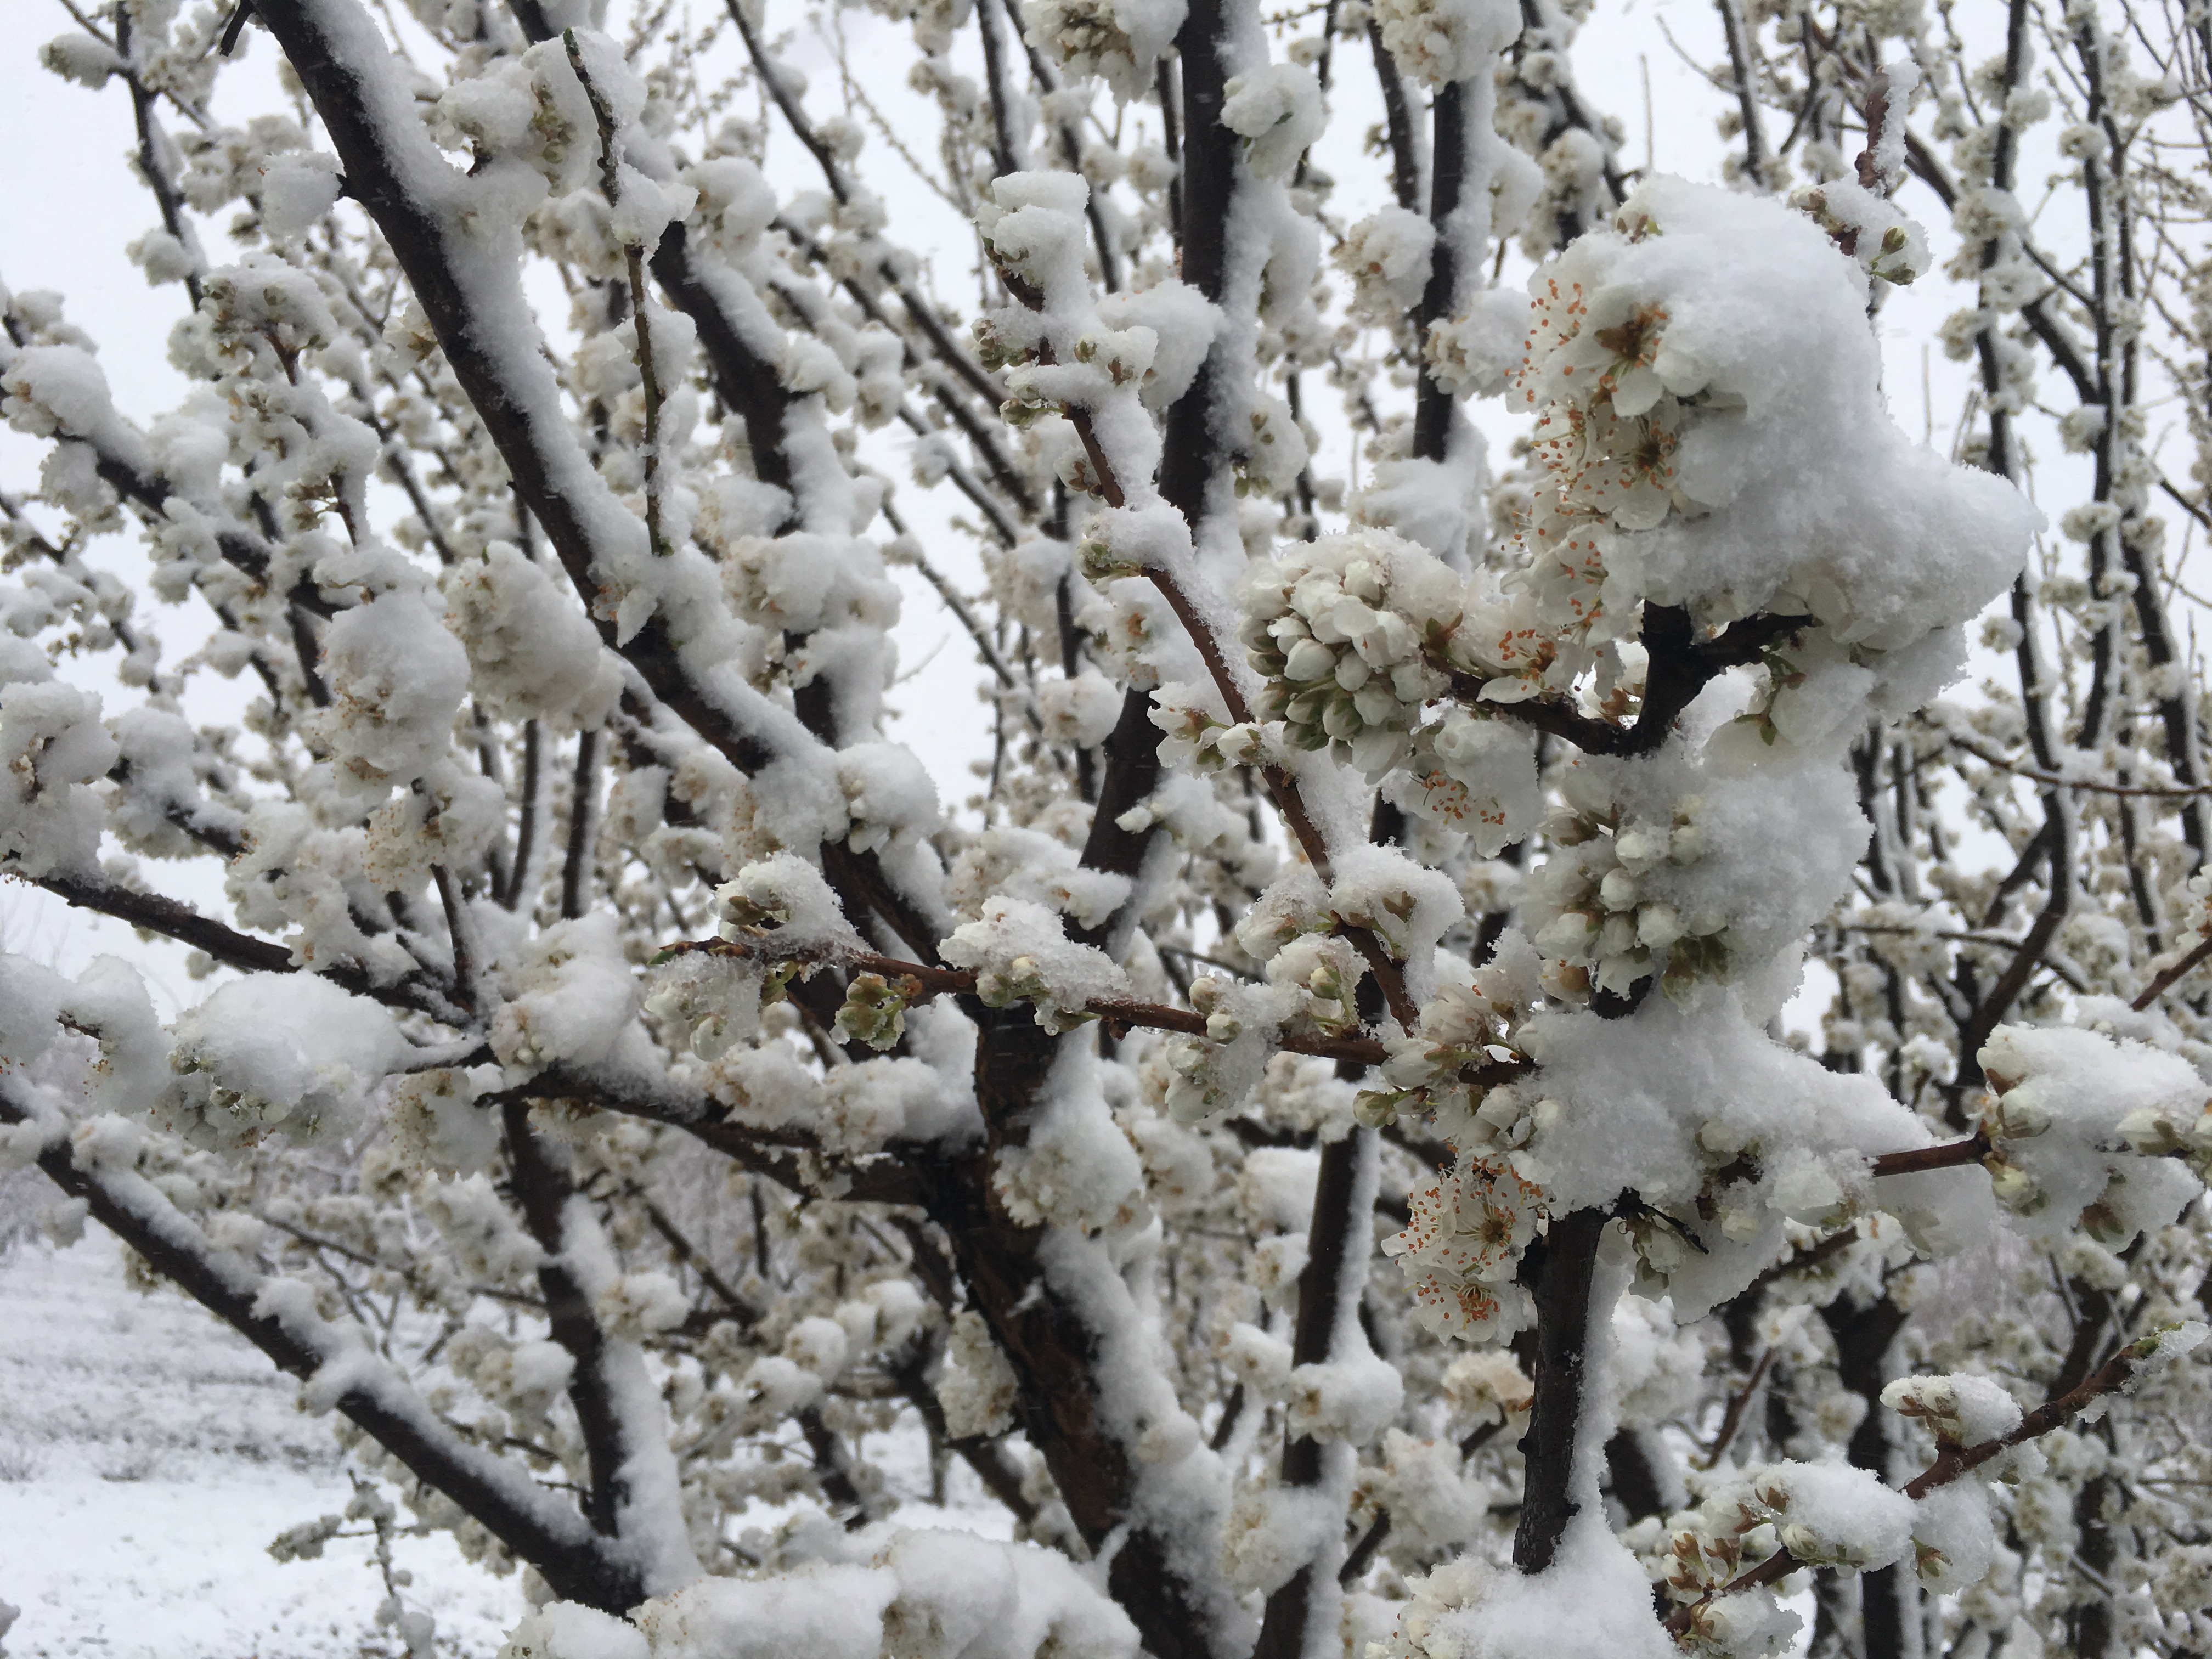 Snow on plum trees in Gloucester County, New Jersey.